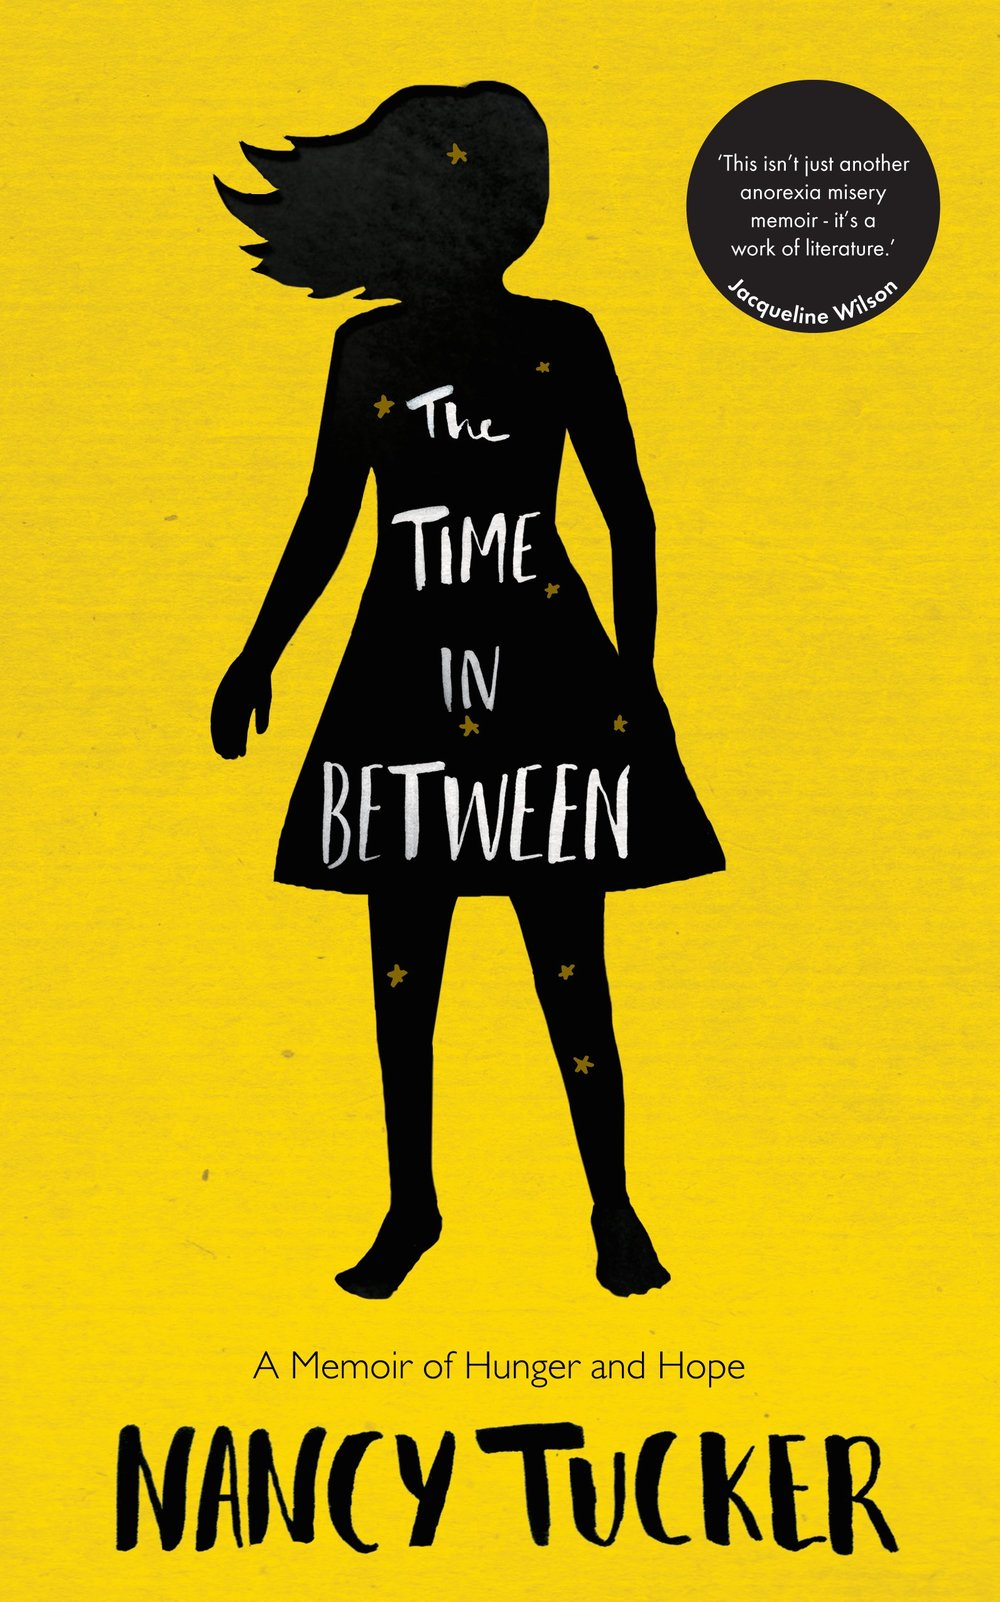 "THE TIME IN BETWEEN Memoir, 304 pages Icon, April 2016 When Nancy Tucker was eight years old, her class had to write about what they wanted in life. She thought, and thought, and then, though she didn't know why, she wrote: ""I want to be thin."" Over the next twelve years, she developed anorexia nervosa, was hospitalized, and finally swung the other way towards bulimia nervosa. She left school, rejoined school; went in and out of therapy; ebbed in and out of life. From the bleak reality of a body breaking down to the electric mental highs of starvation, hers has been a life held in thrall by food. Told with remarkable insight, dark humor, and acute intelligence, THE TIME IN BETWEEN is a profound, important window into the workings of an unquiet mind—a Wasted for the twenty-first century."